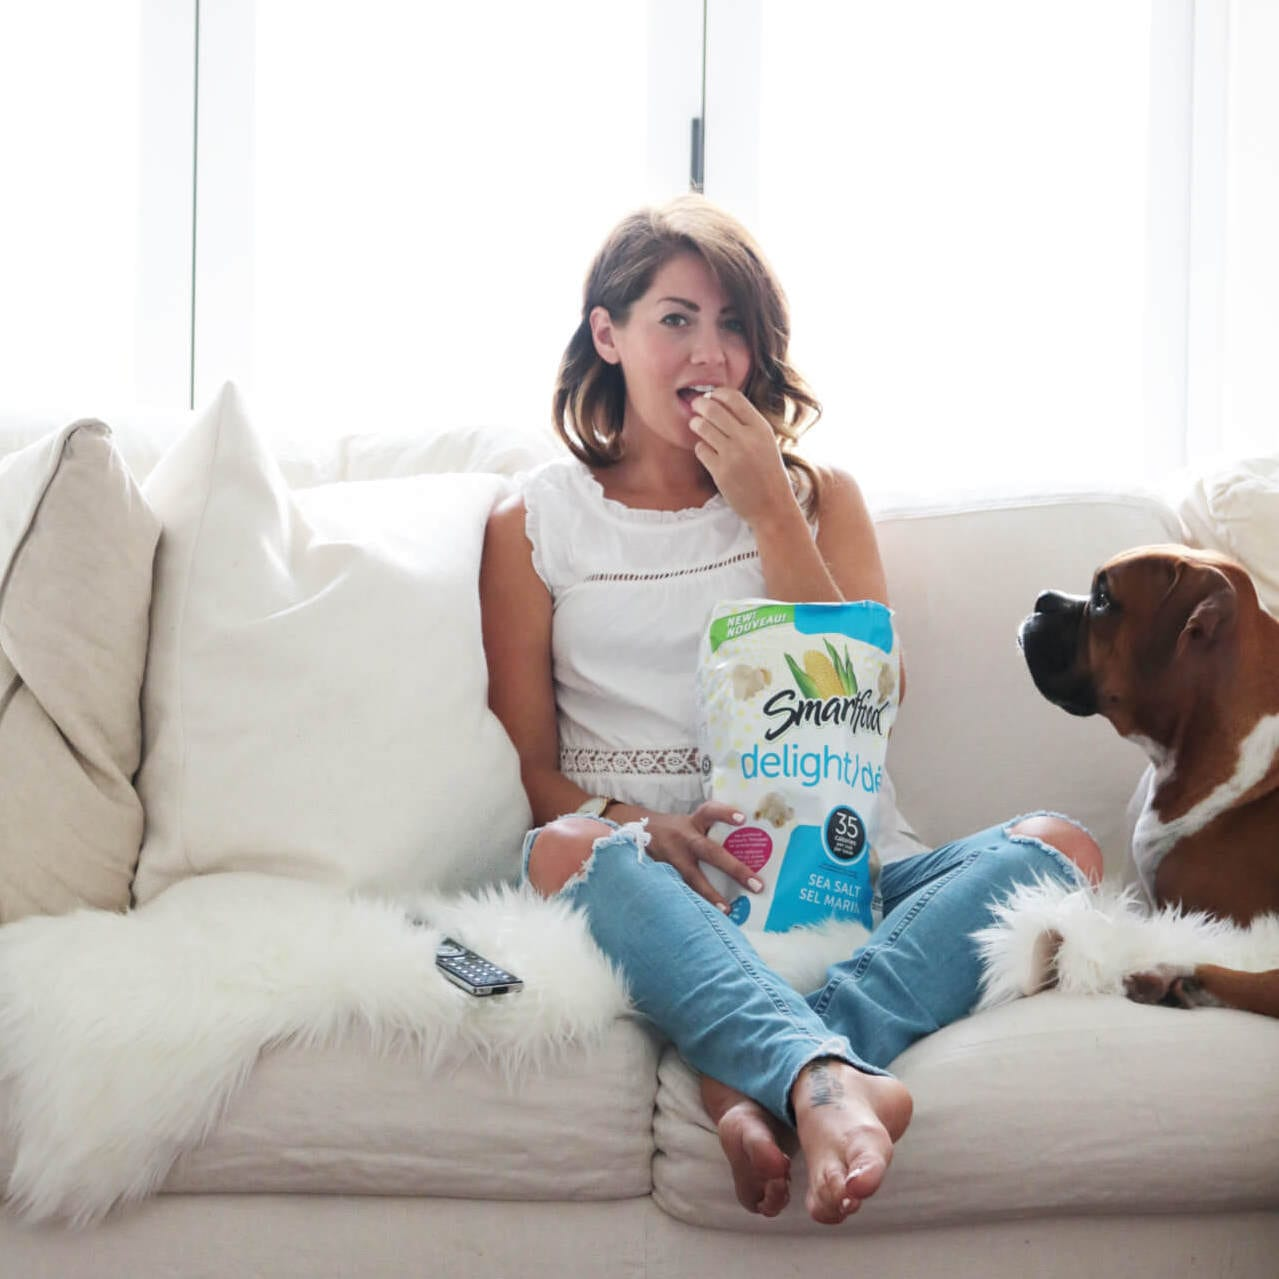 Jillian-Harris-Eating-Smart-Pop-Popcorn-3